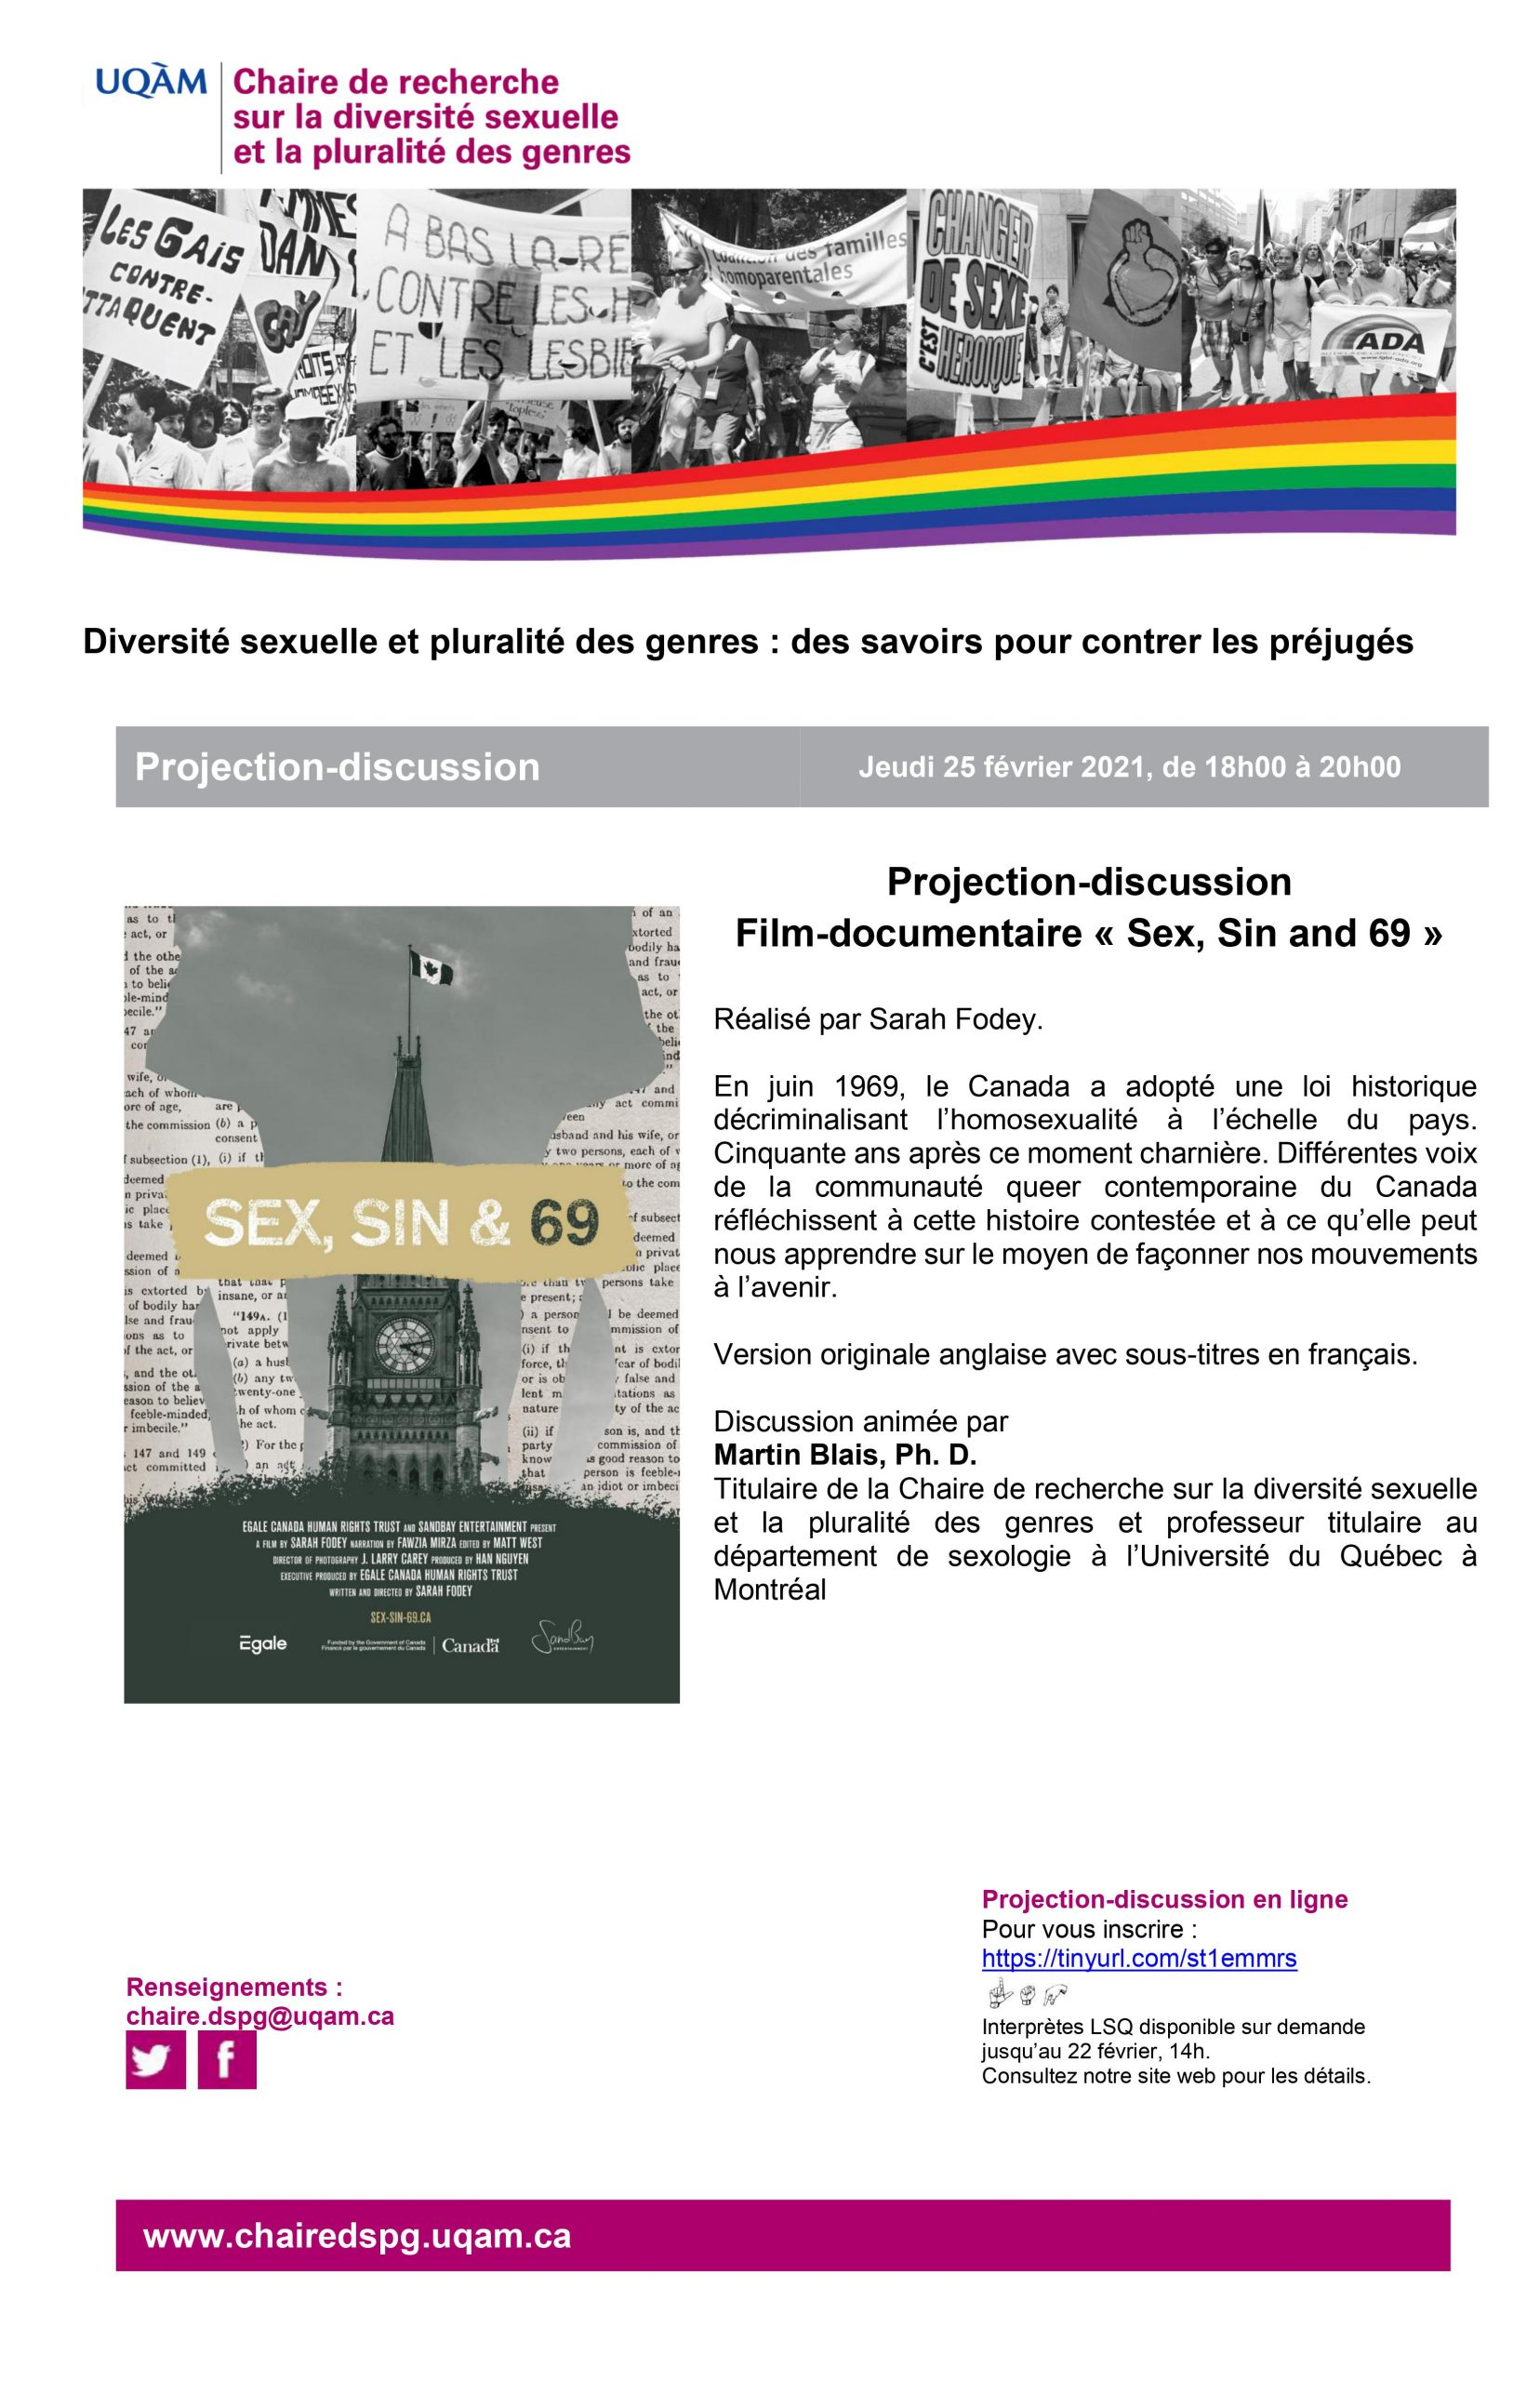 Projection-discussion du film-documentaire Sex, sin and 69